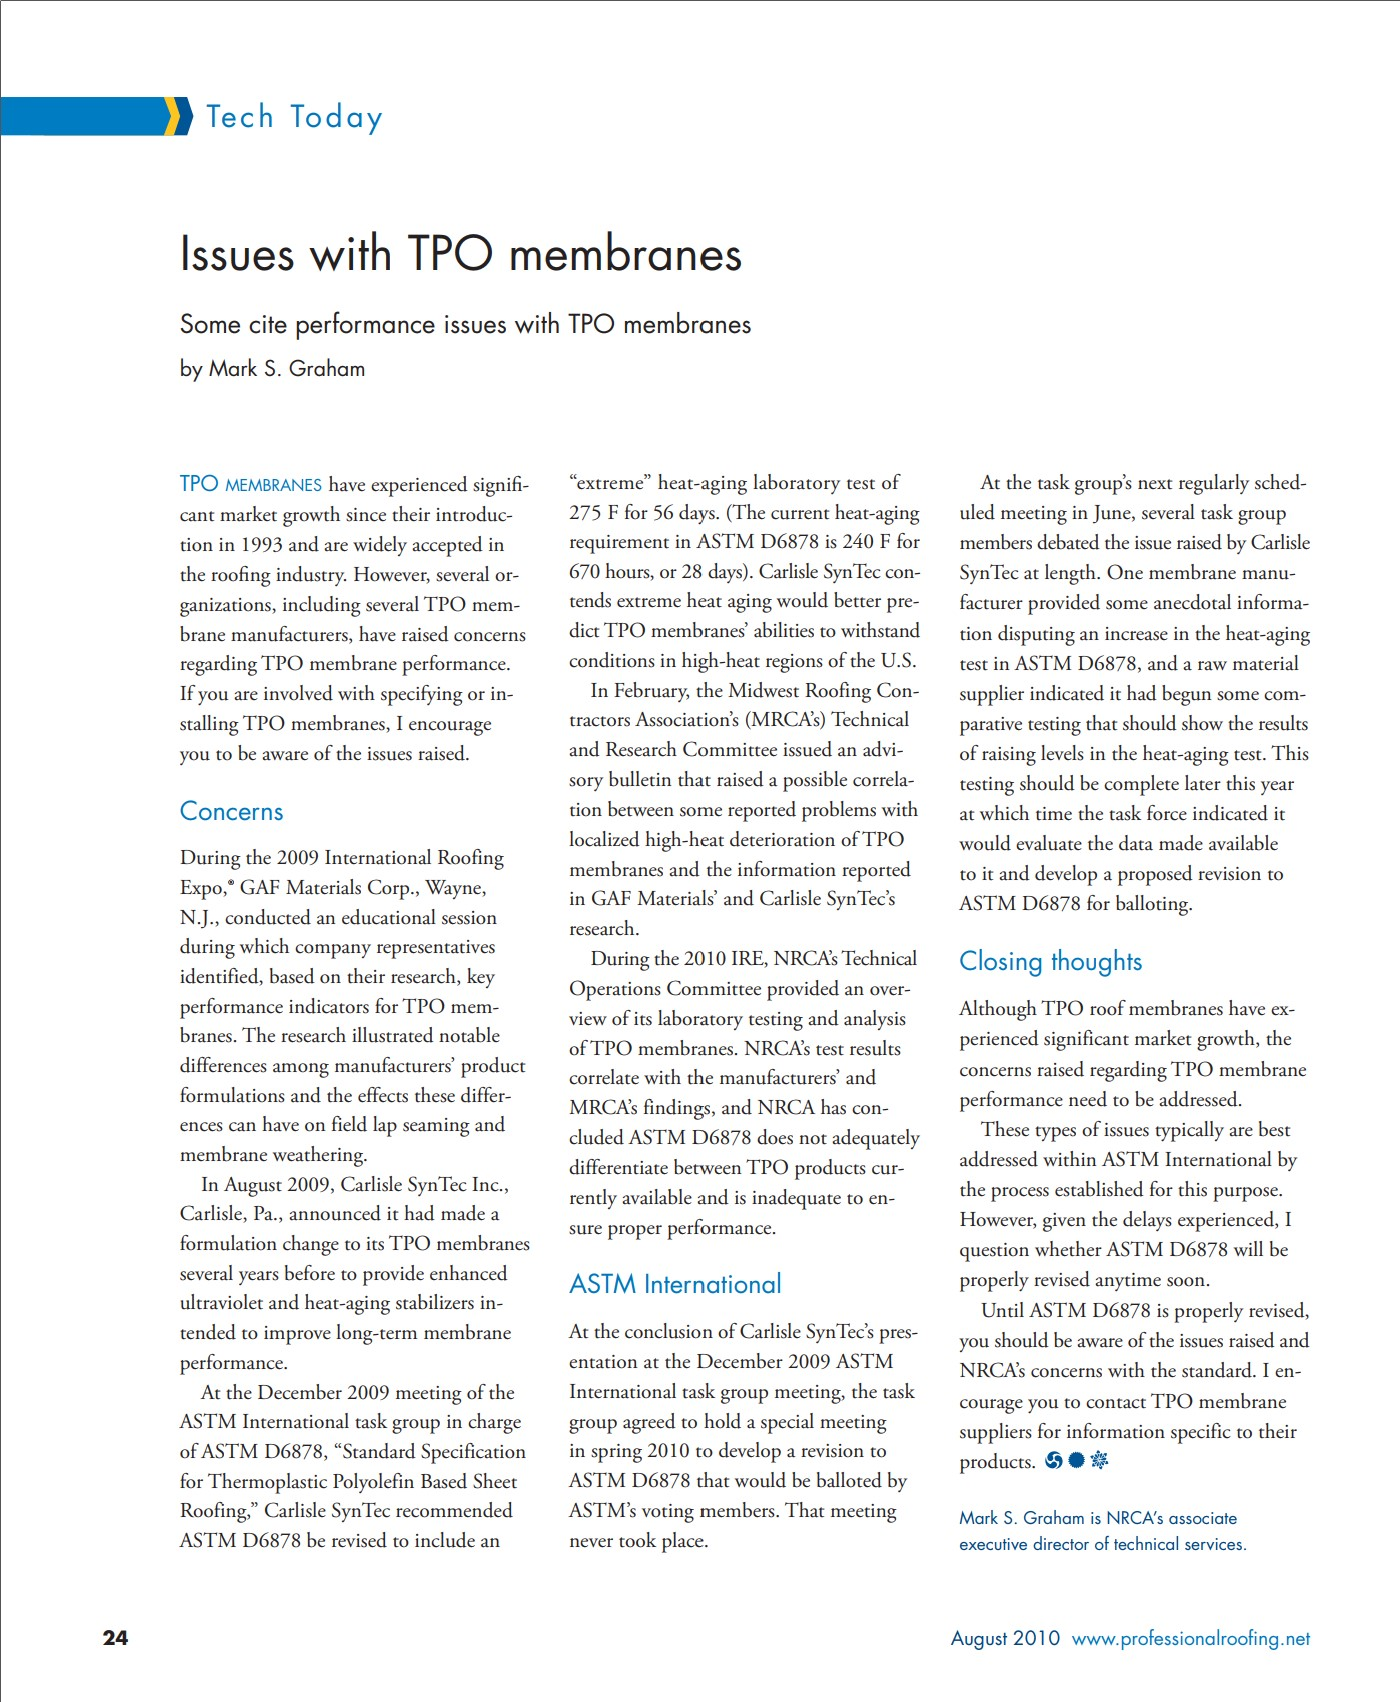 NRCA issues with TPO membrane